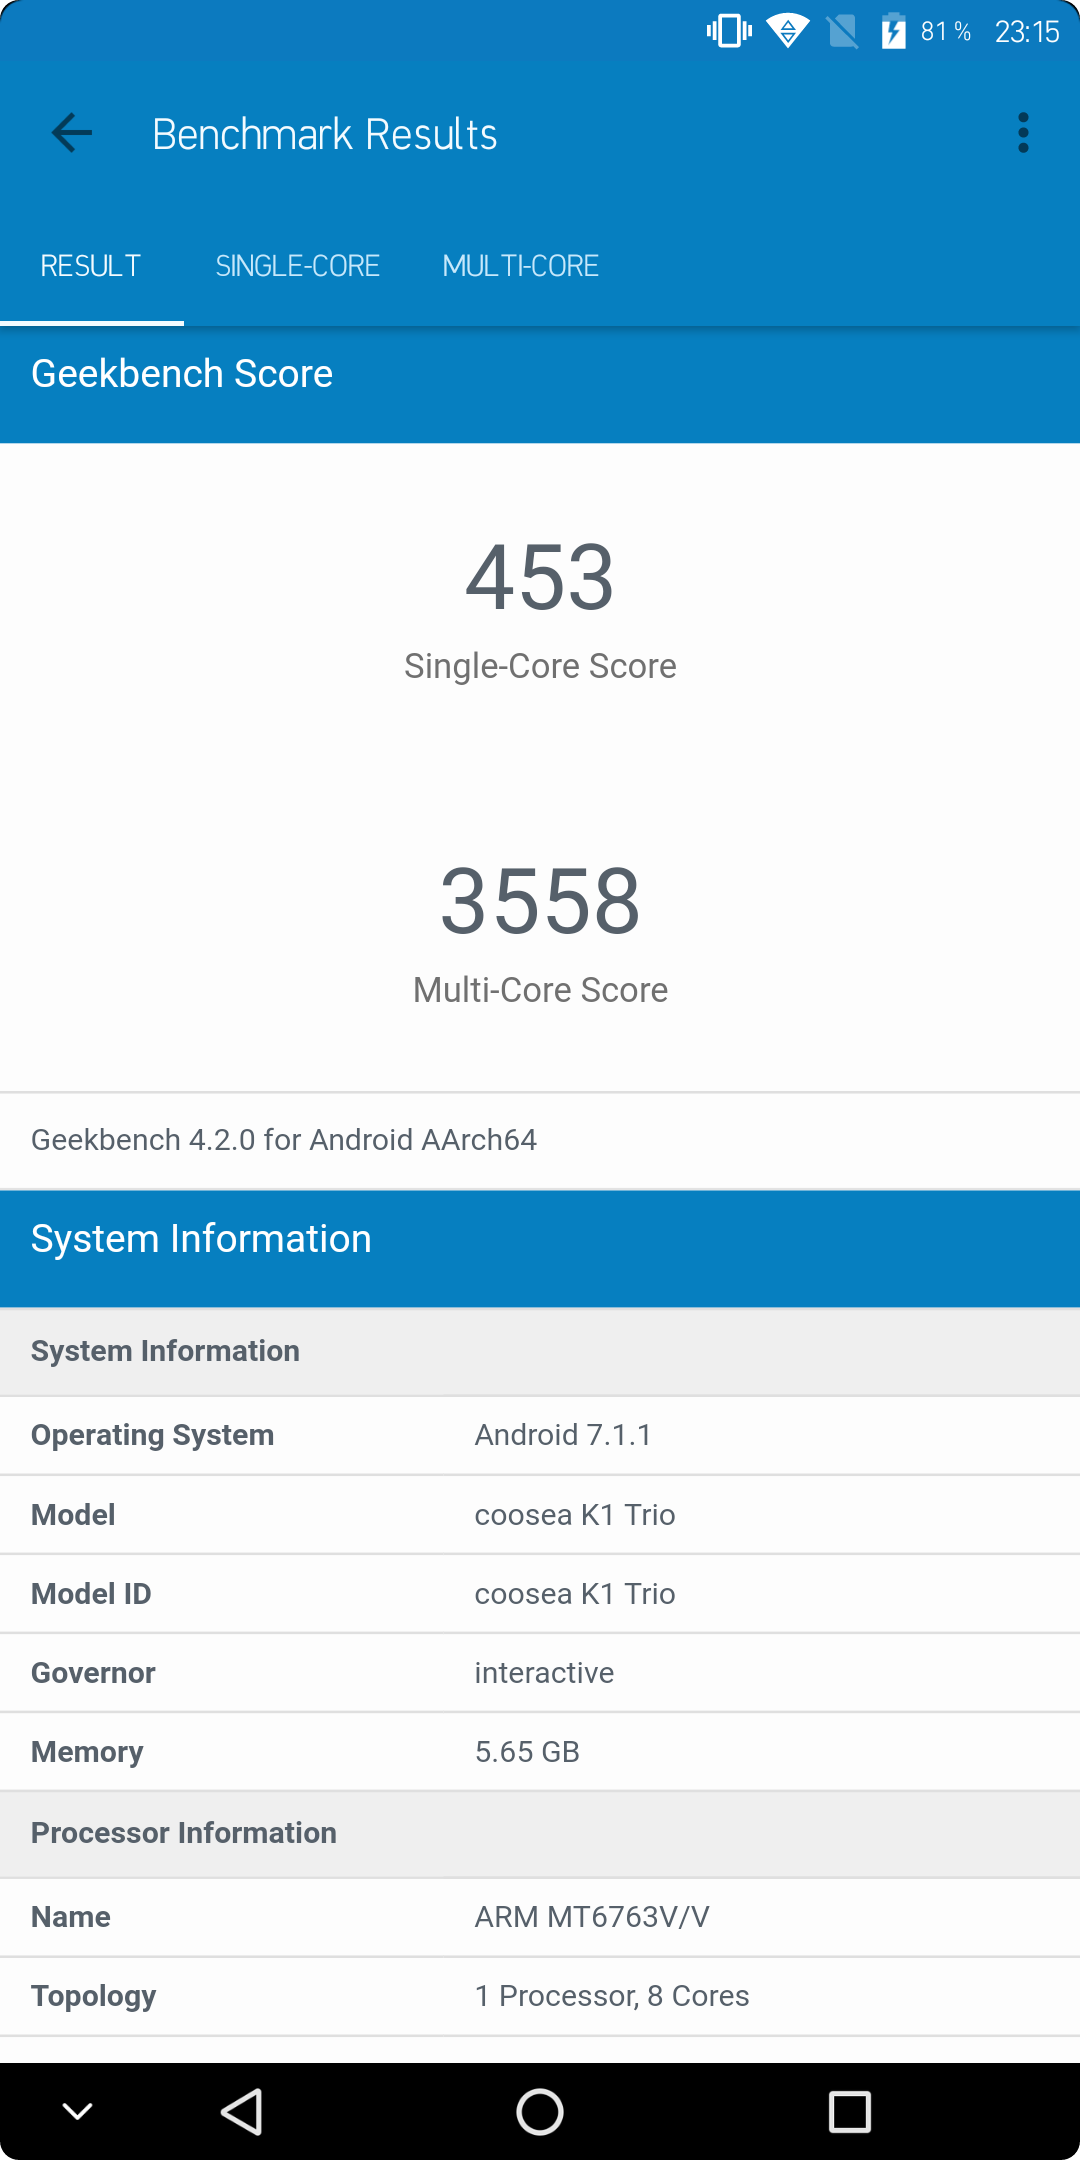 Koolnee K1 Trio Geekbench